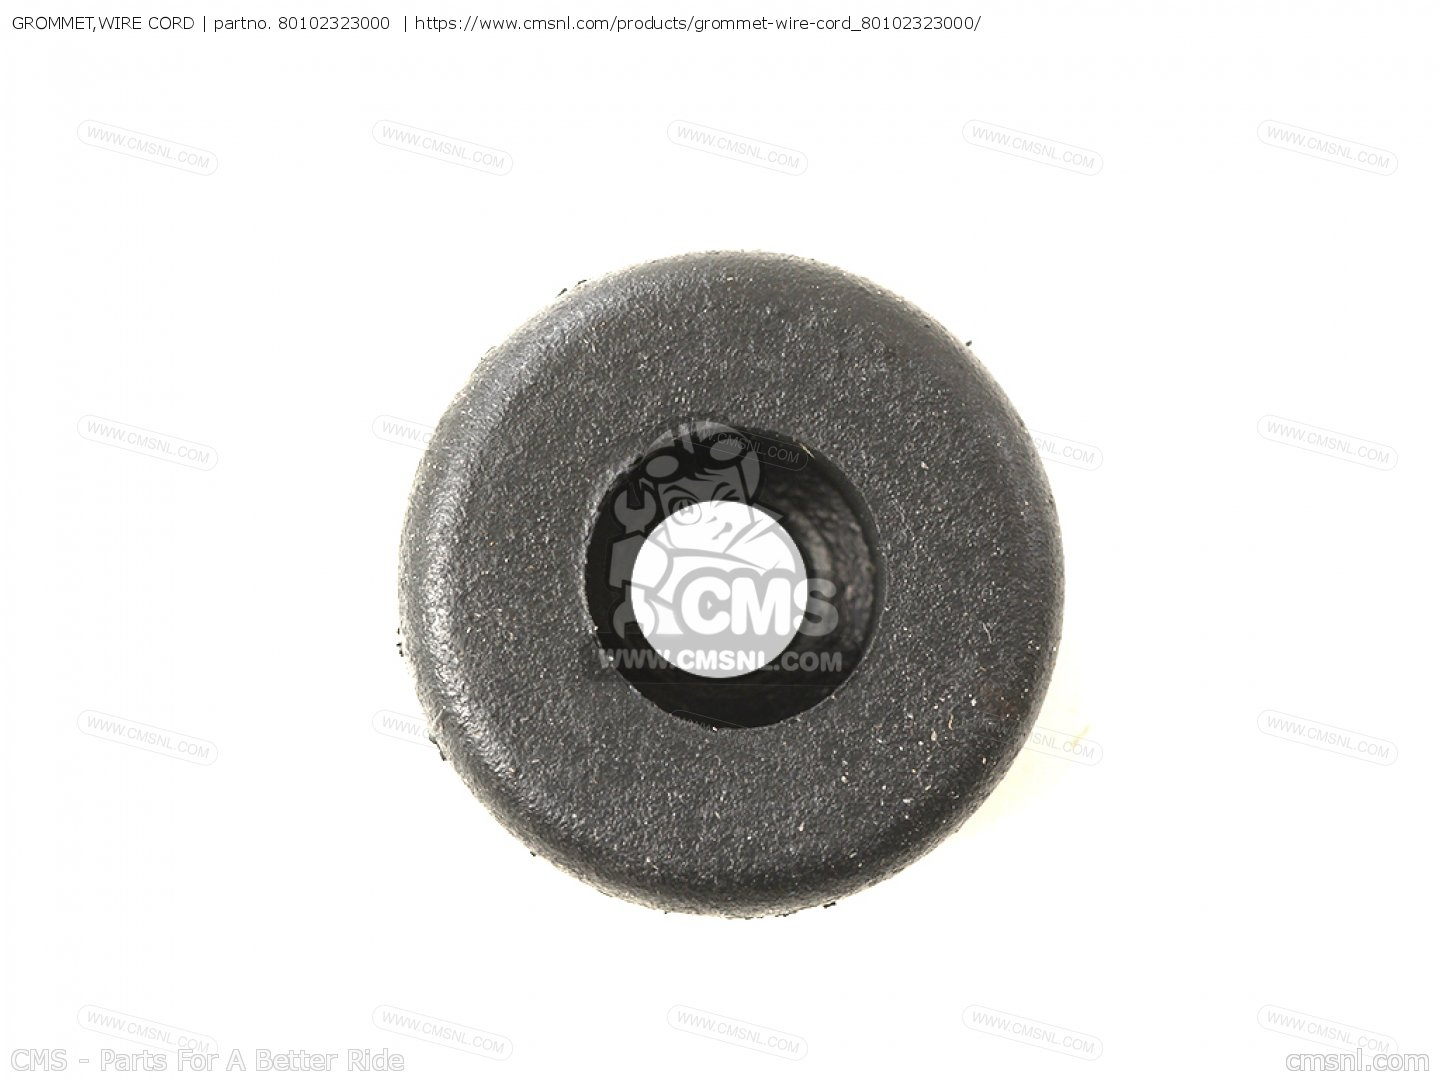 GROMMET,WIRE CORD, fits CB500K0 FOUR EUROPEAN DIRECT SALES - order ...